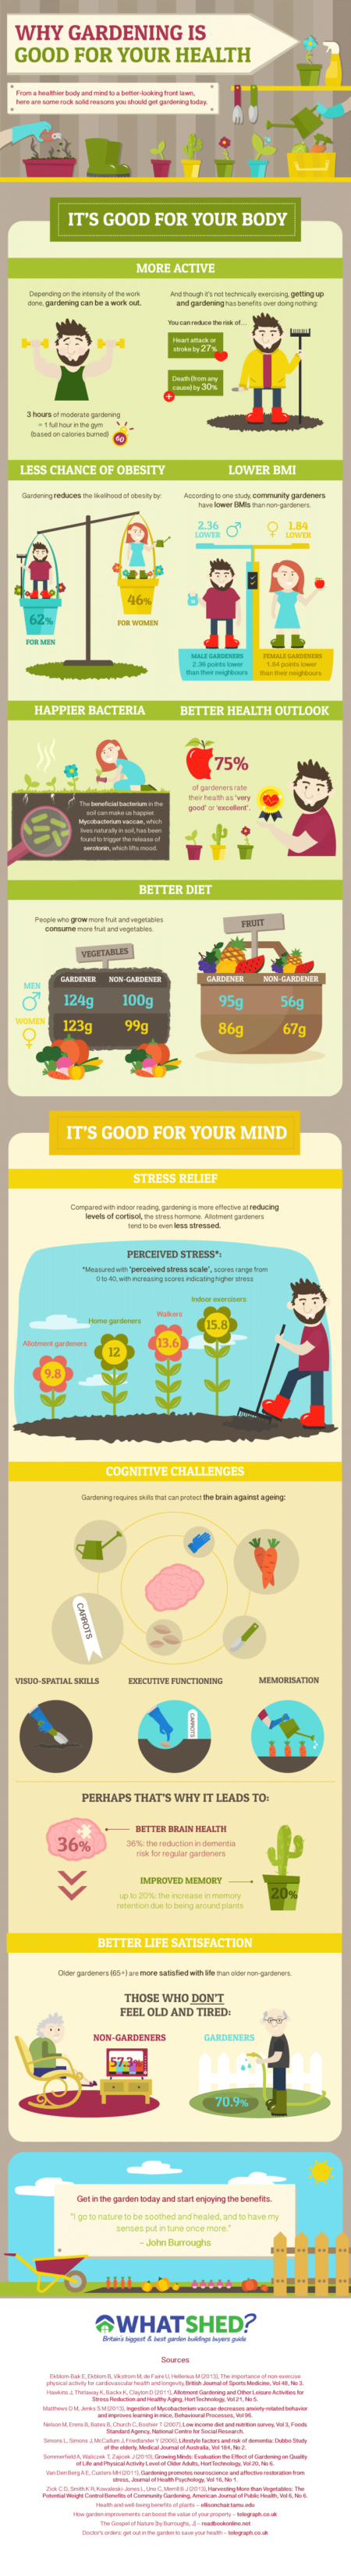 Why-gardening-is-good-for-your-health